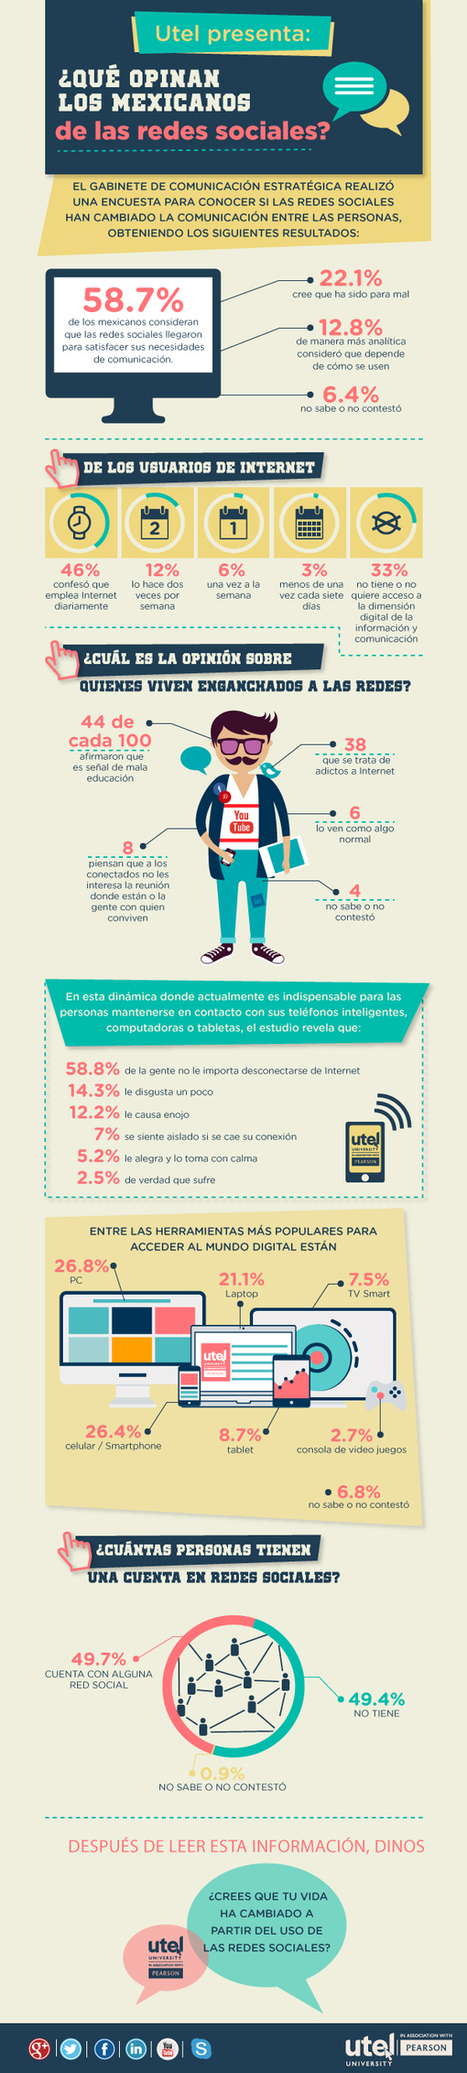 Qué opinan los mexicanos de las Redes Sociales #infografia #infographic #socialmedia | Seo, Social Media Marketing | Scoop.it